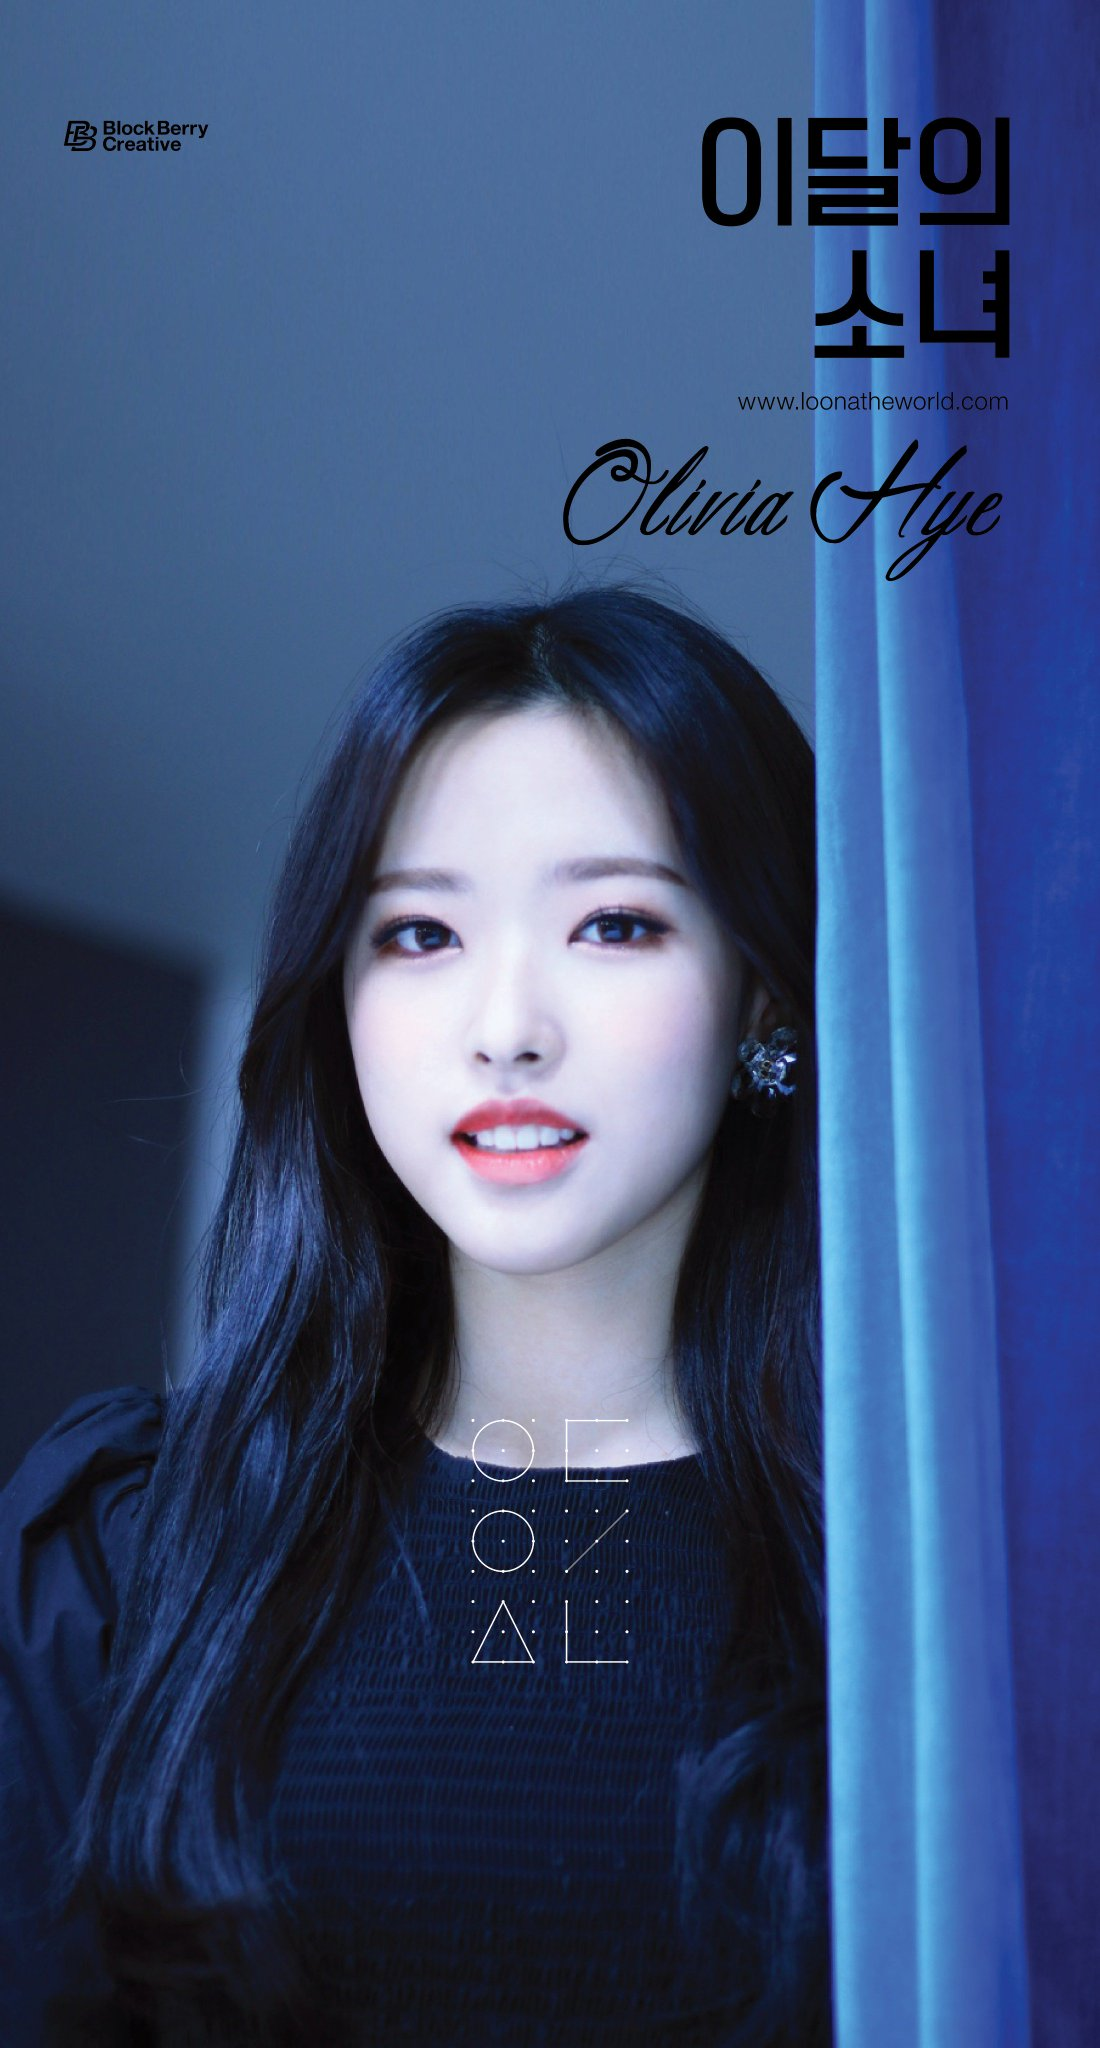 #Egoist #이달의소녀 #LOONA #올리비아혜 #OliviaHye LOOΠΔ https://t.co/5CfbXI886V https://t.co/FFkbxnYb4V